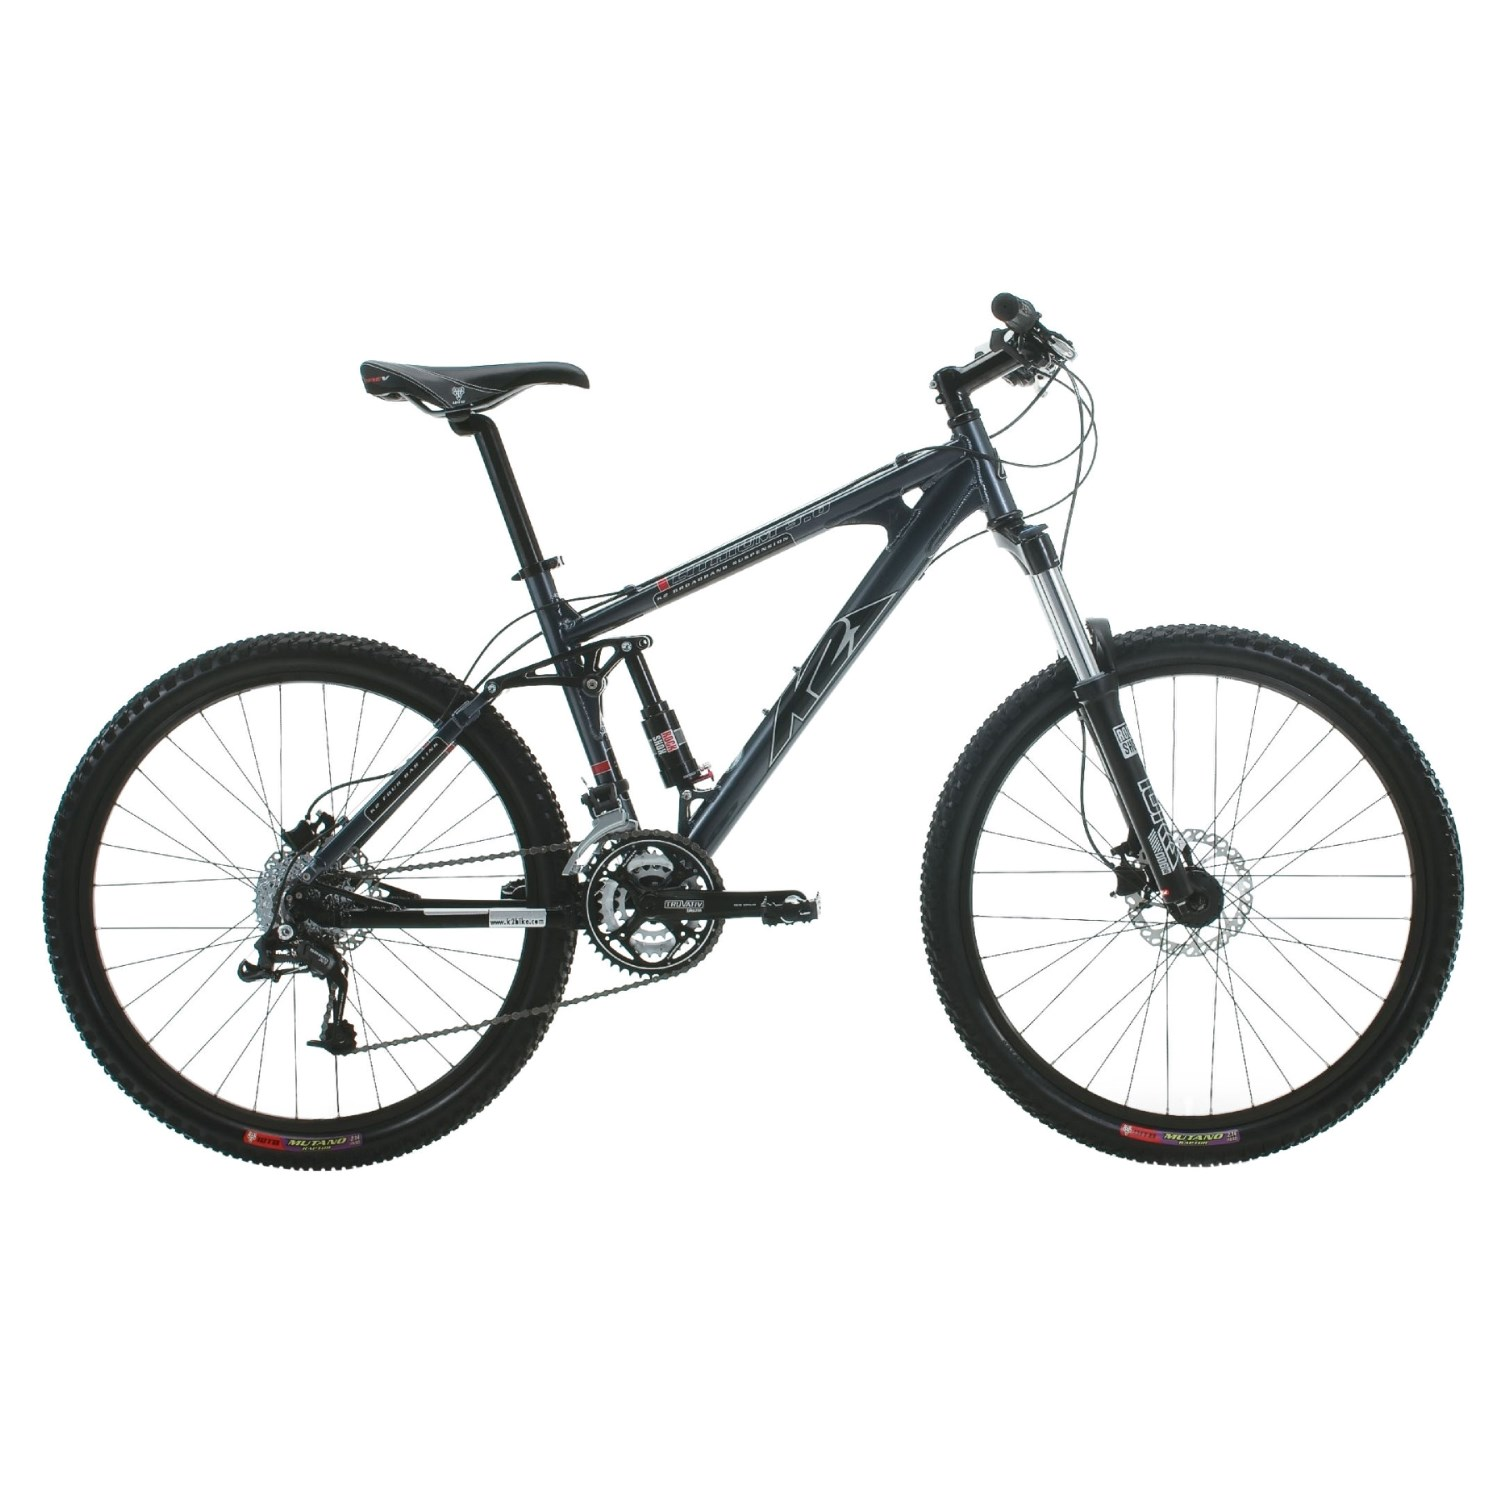 K2 Lithium 3 0 Mountain Bike Mtb